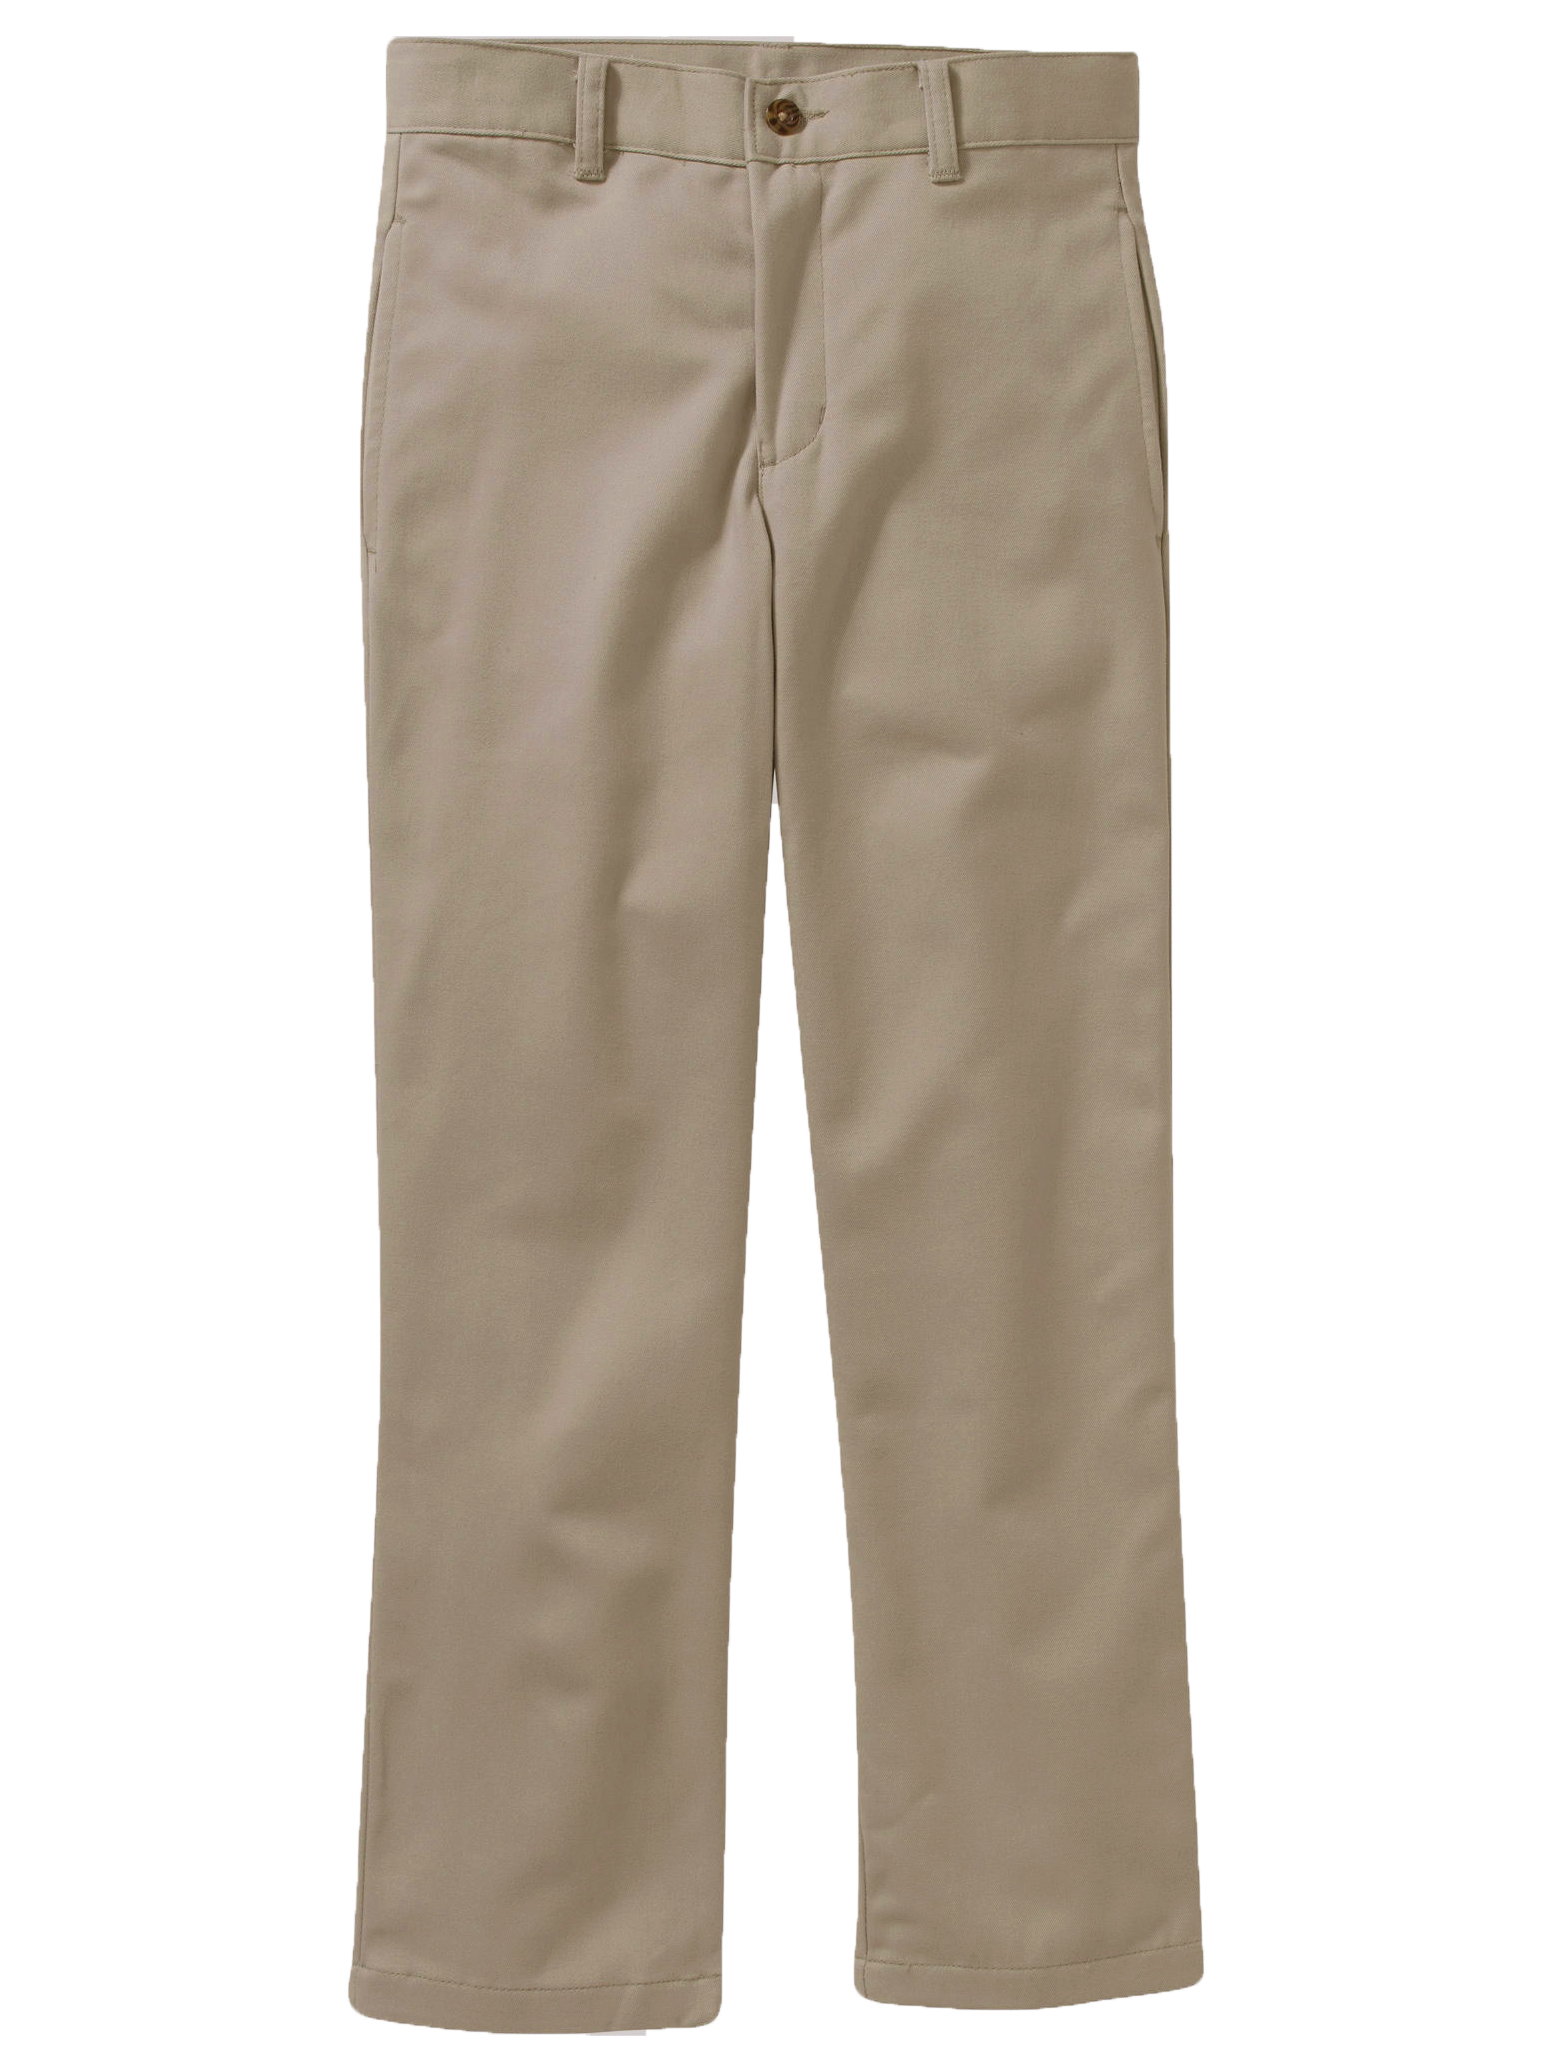 Boys Flat Front Twill Pant With Scotchguard